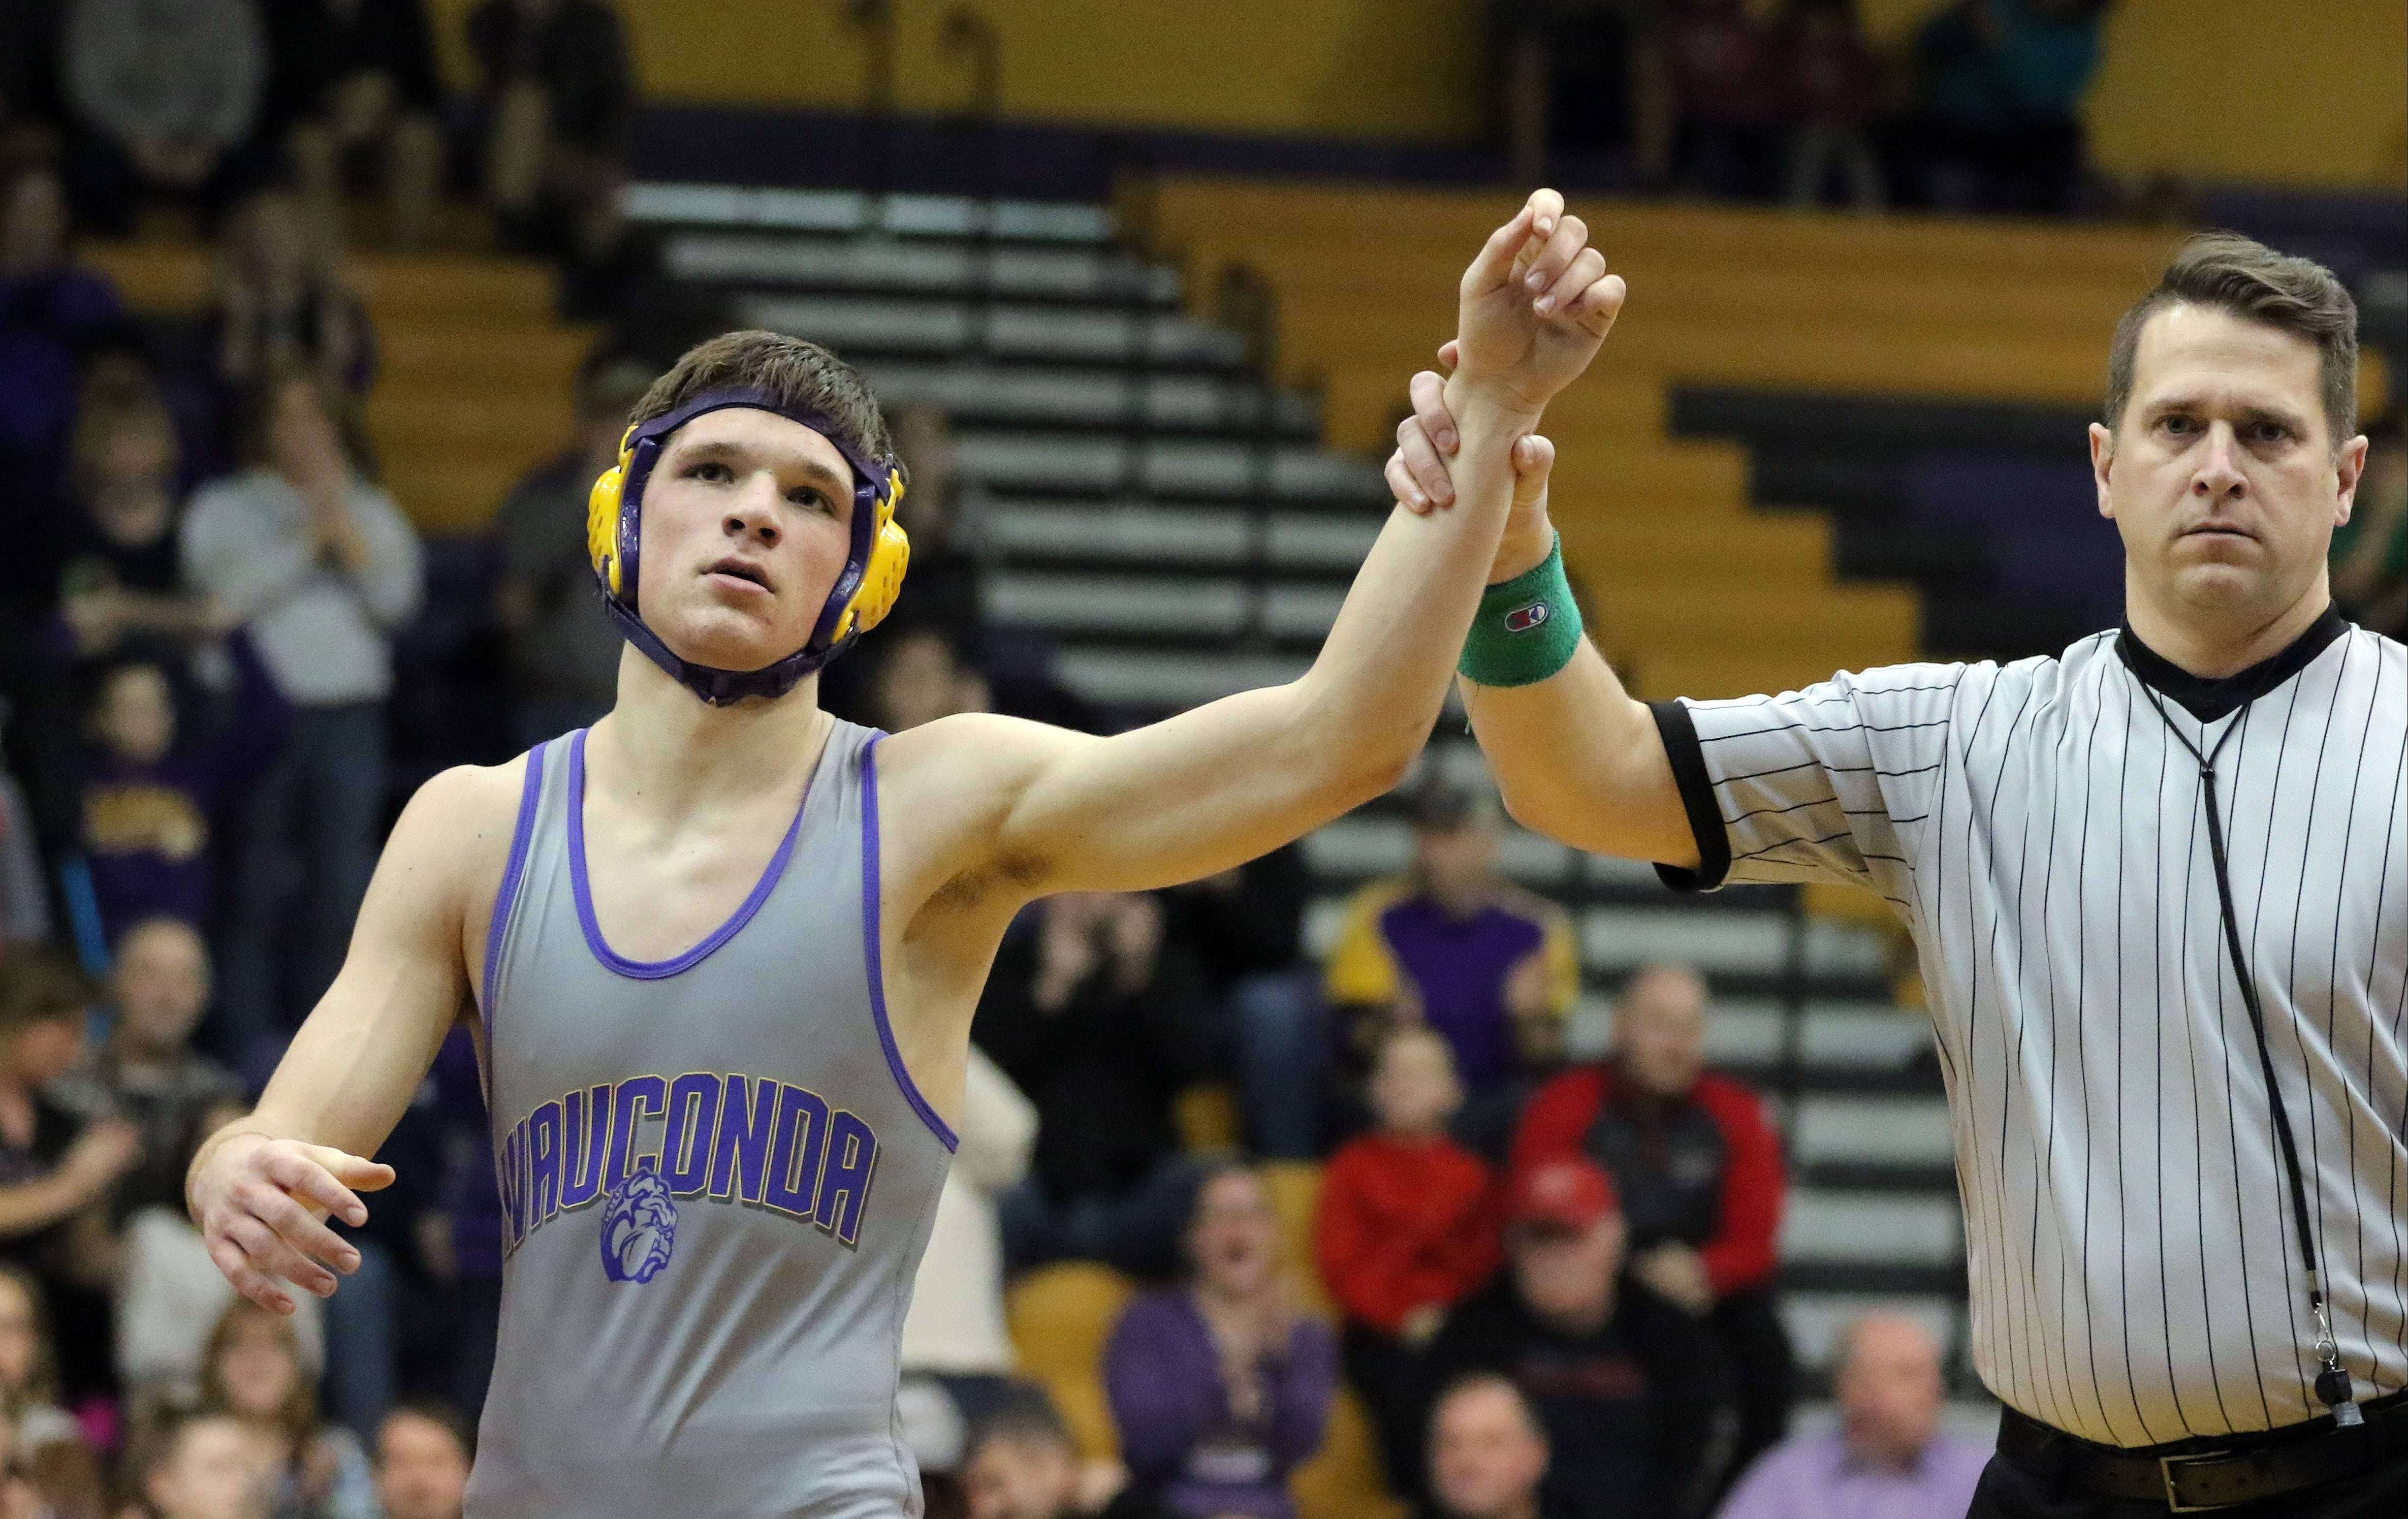 Wauconda's Zac Finn wins his match over Grant's Ryan Alsip at 182 pounds last season. A state qualifier last year, Finn is back for his senior season.